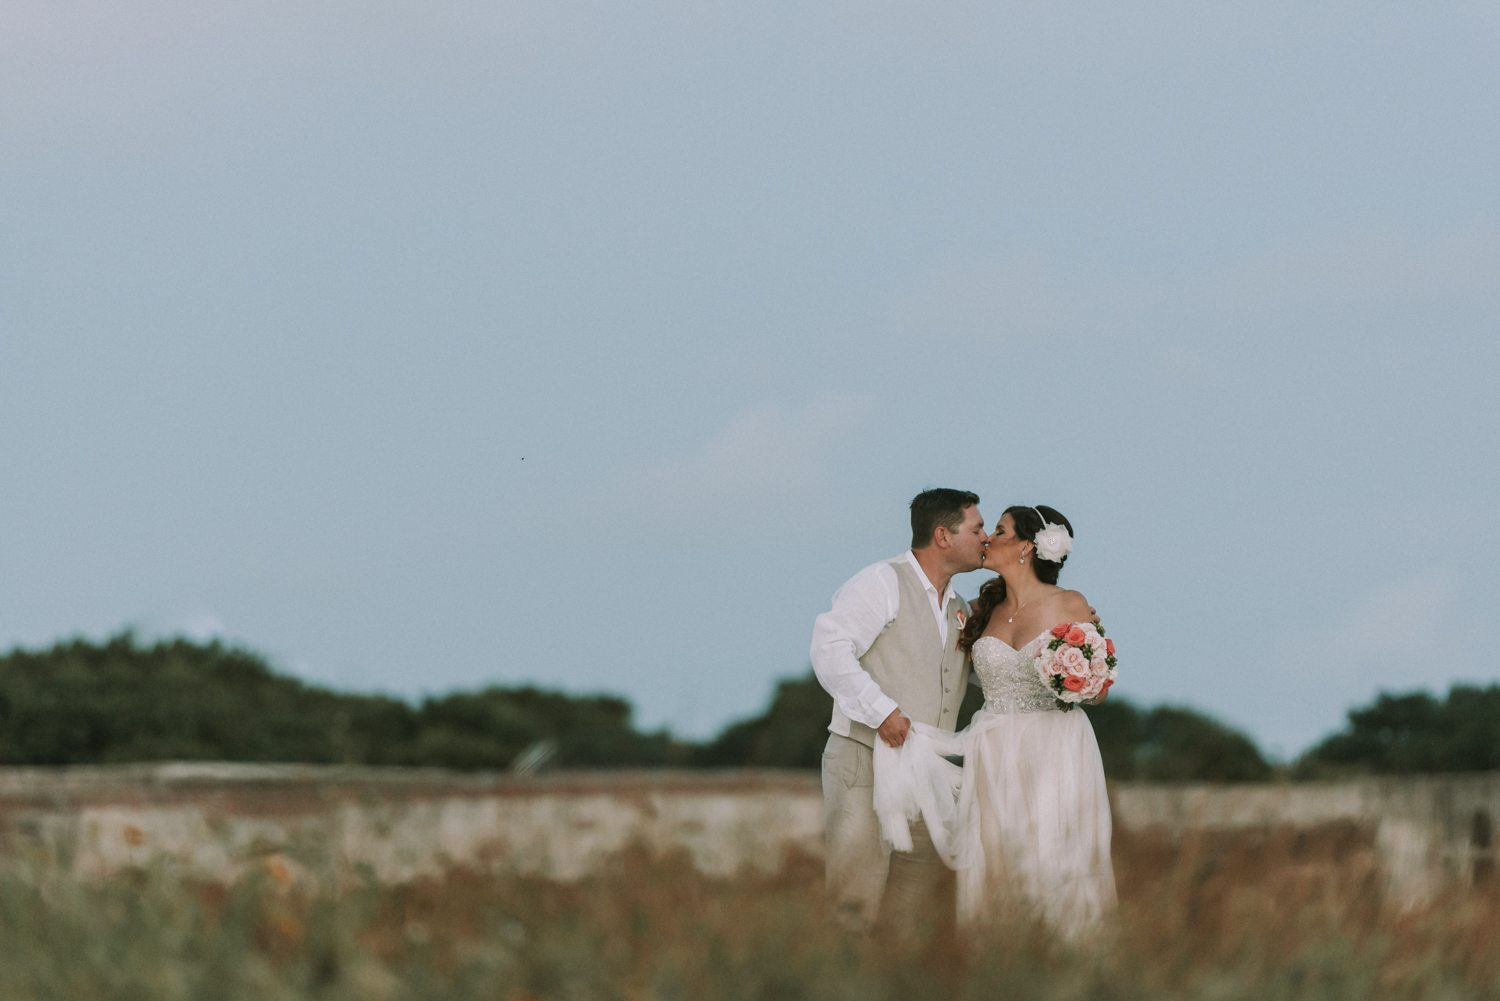 Erin Colin Fort Zachary Taylor Rooftop Cafe Key West Wedding Photographer 53 - Erin & Colin   Key West Wedding Photographer   Fort Zachary Taylor